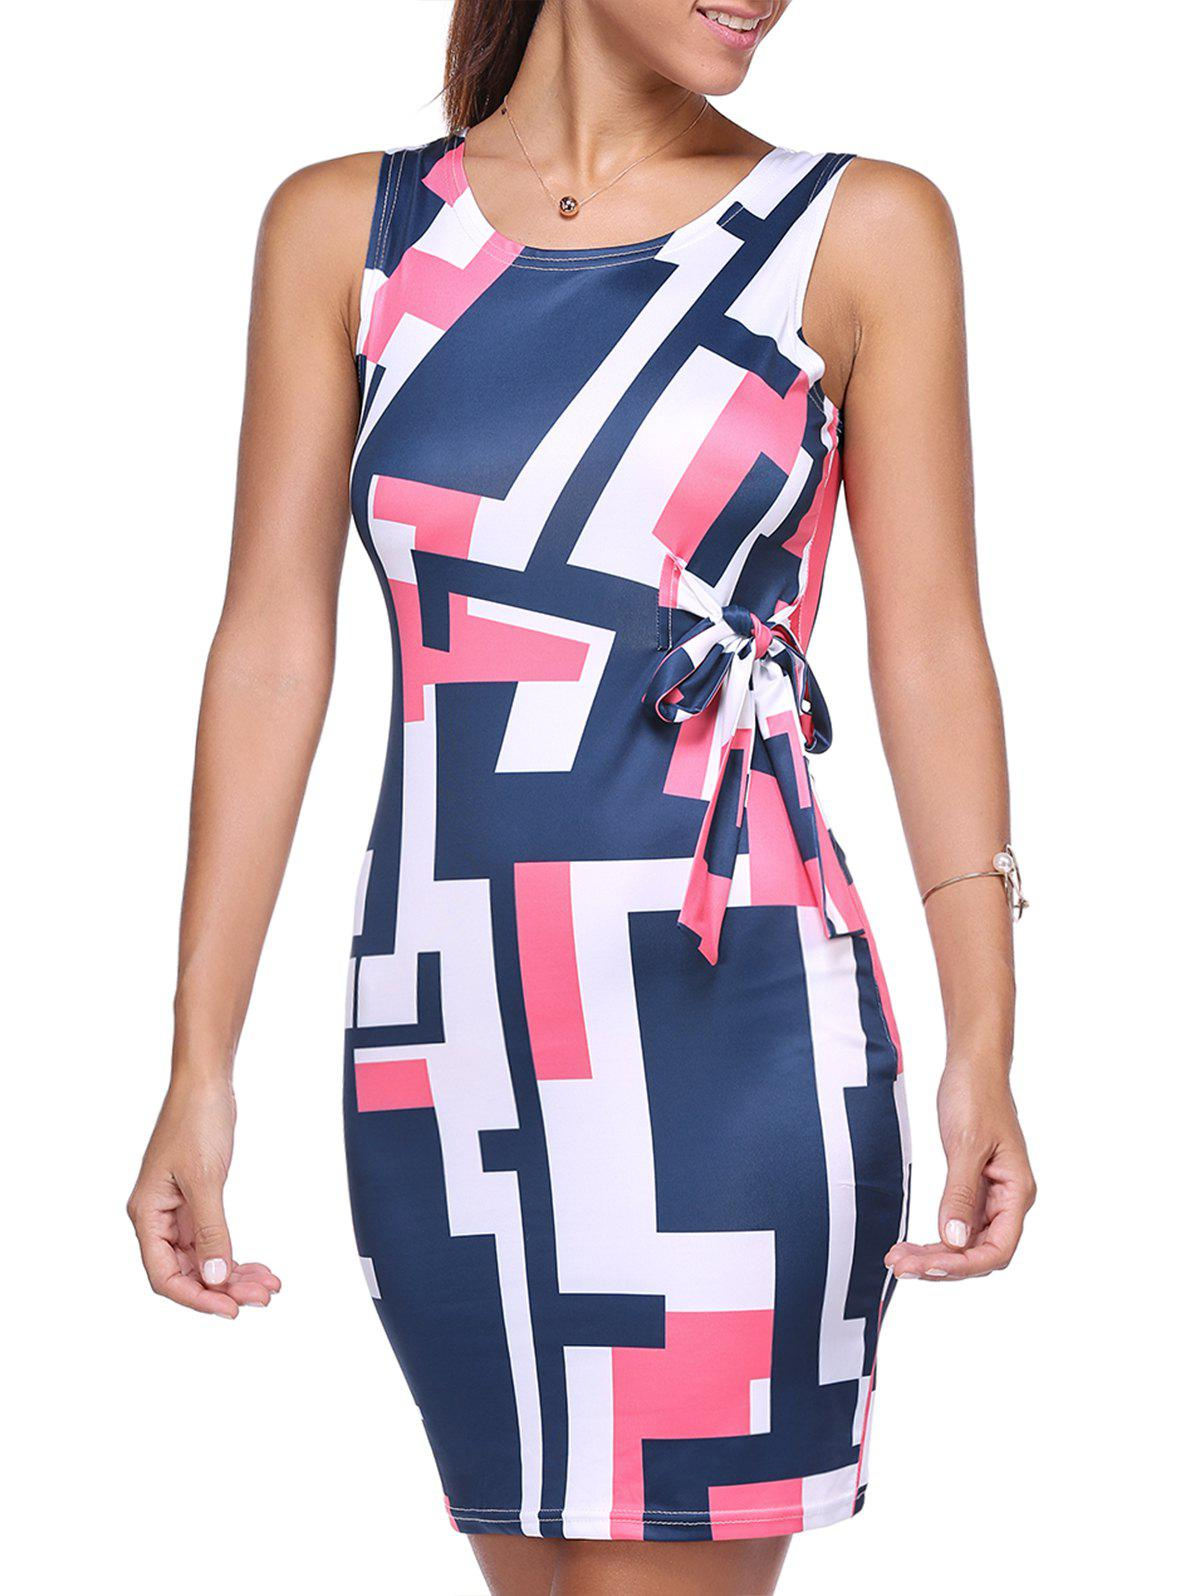 Sleeveless Self Tie Colorized Print Dress - COLORMIX XL